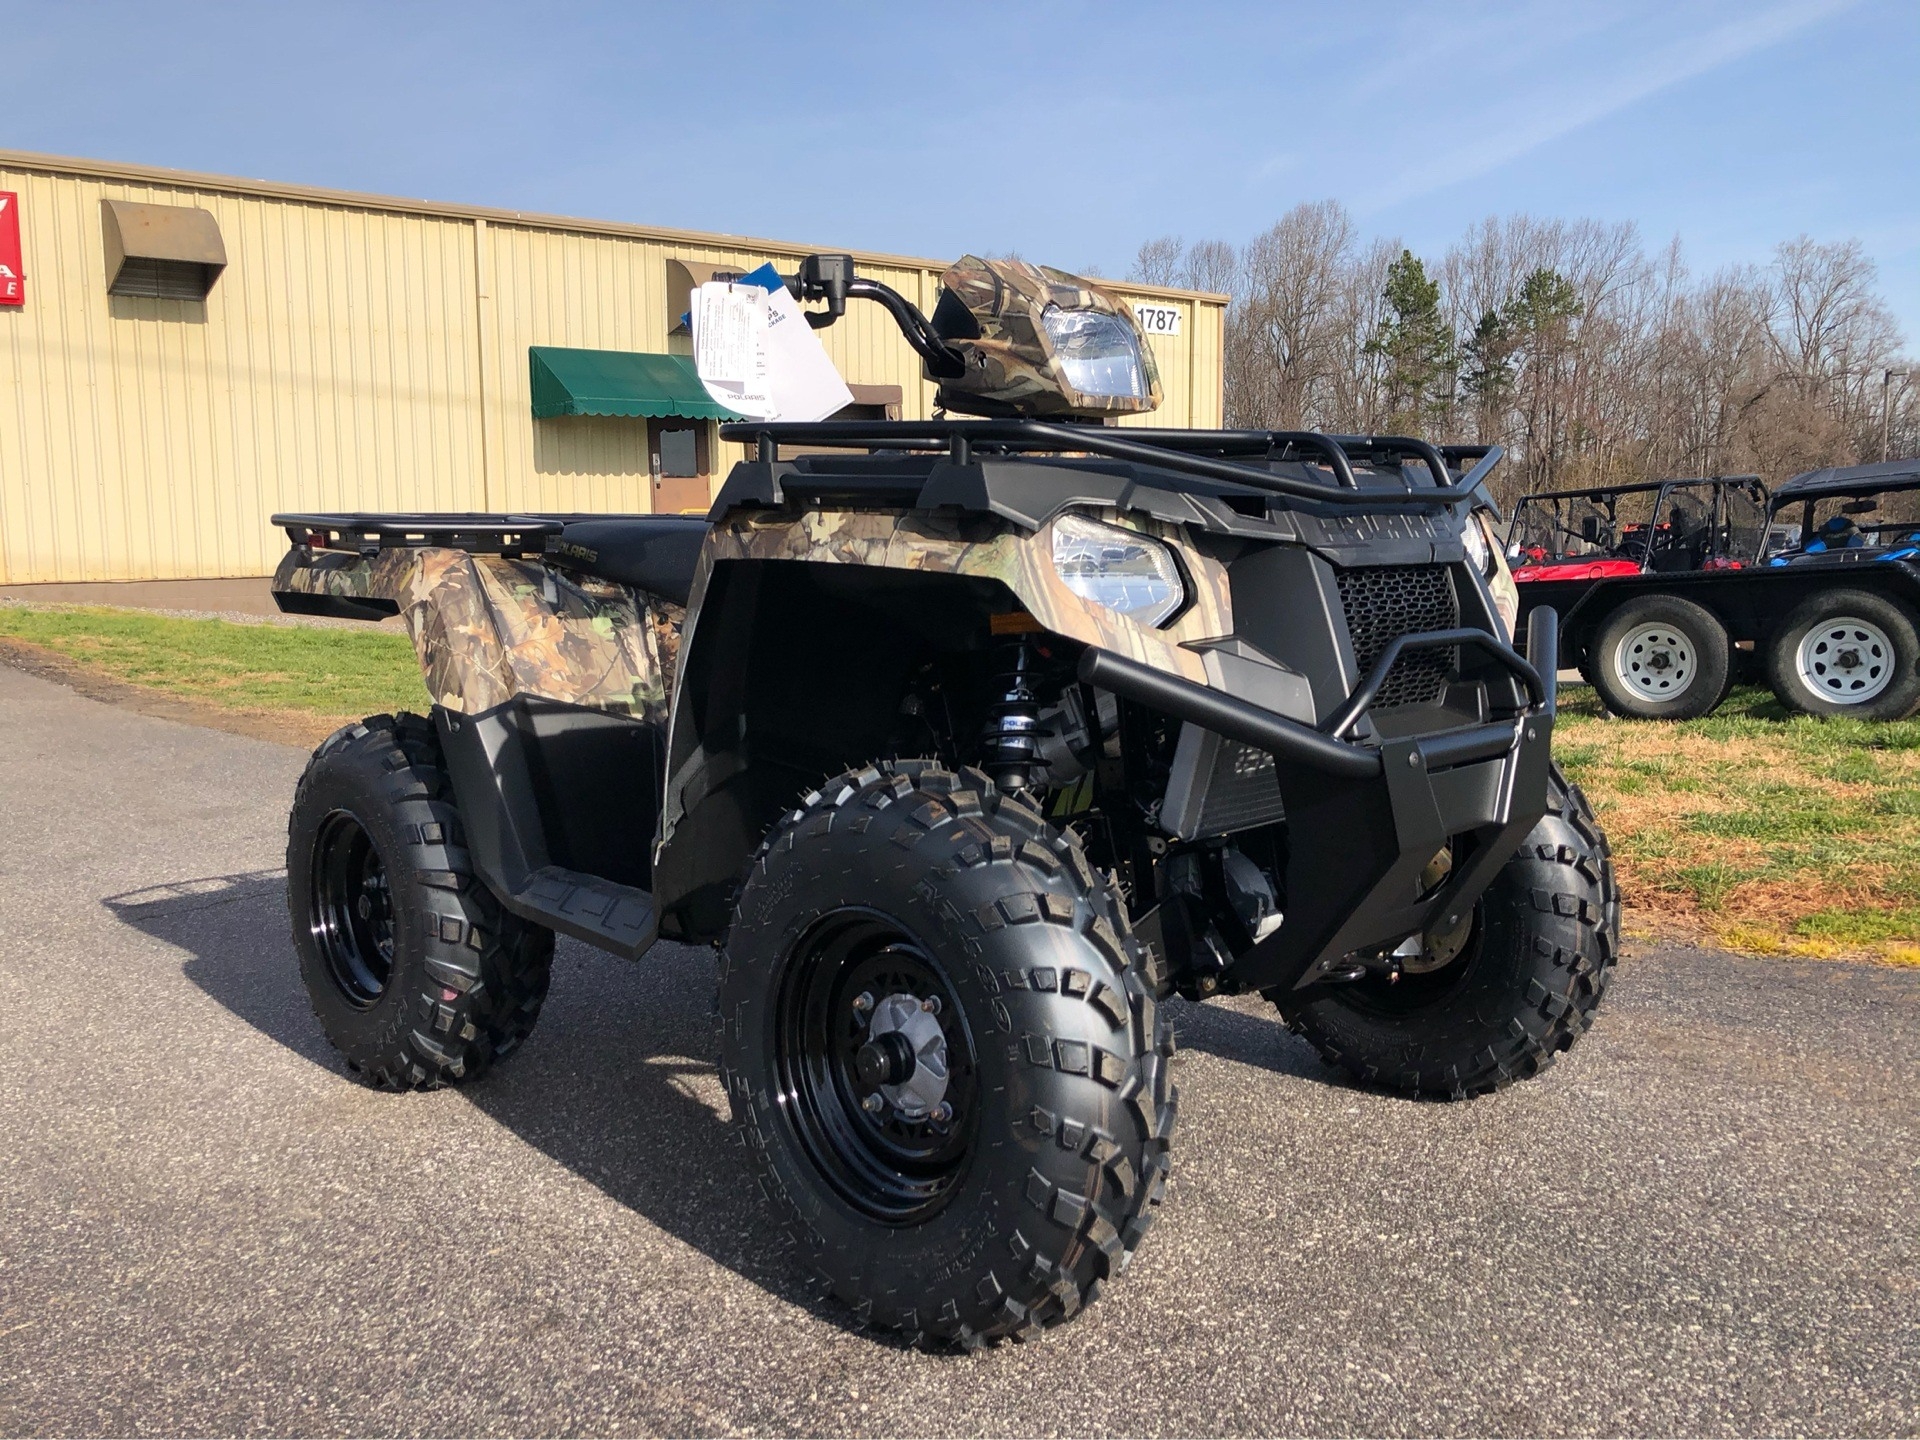 2020 Polaris Sportsman 570 EPS Utility Package in Statesville, North Carolina - Photo 1